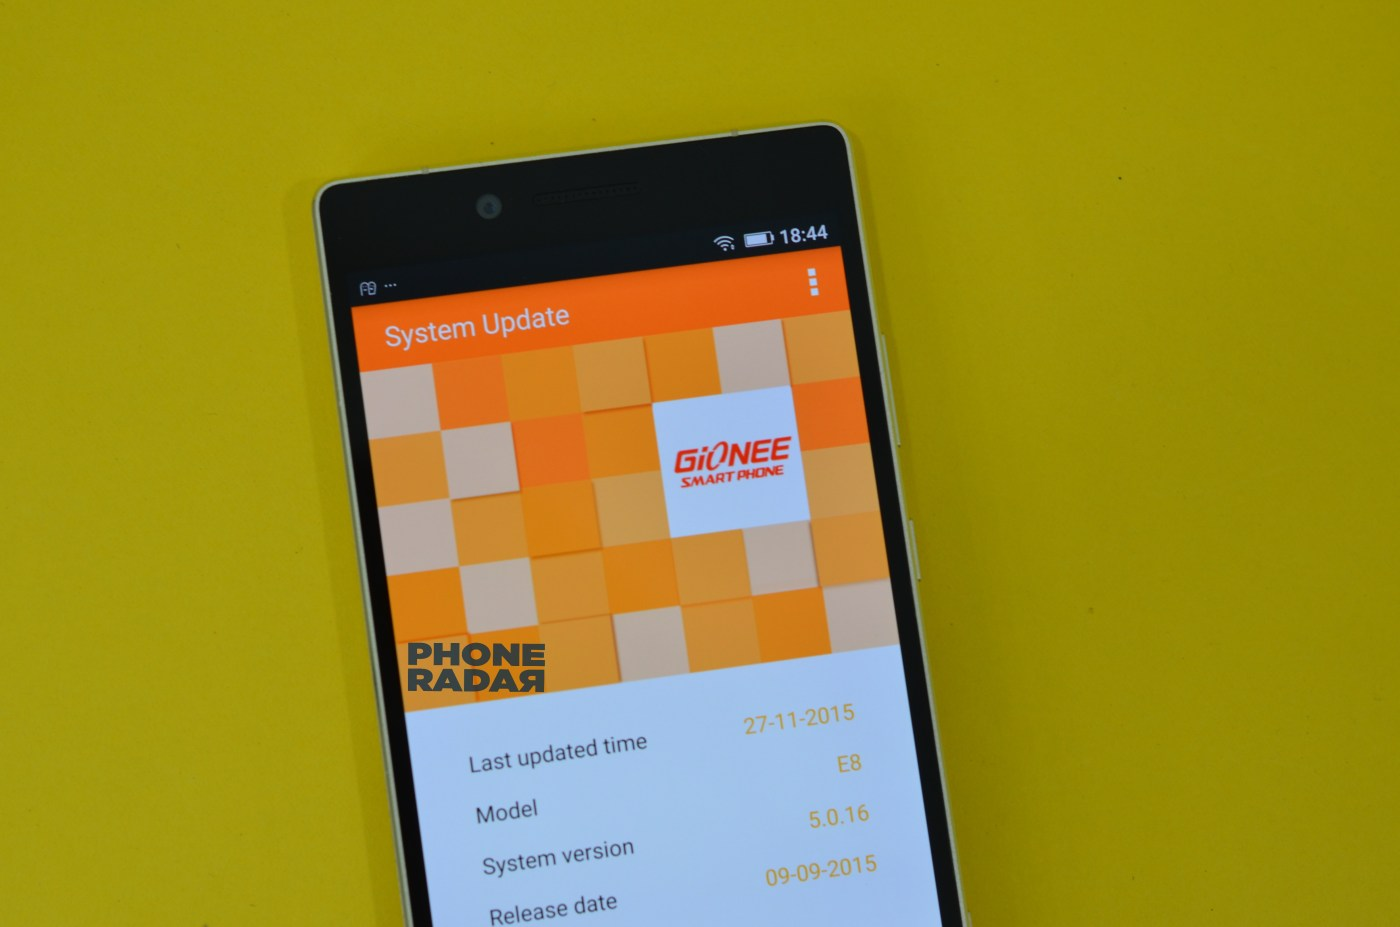 Gionee Elife E8 System update